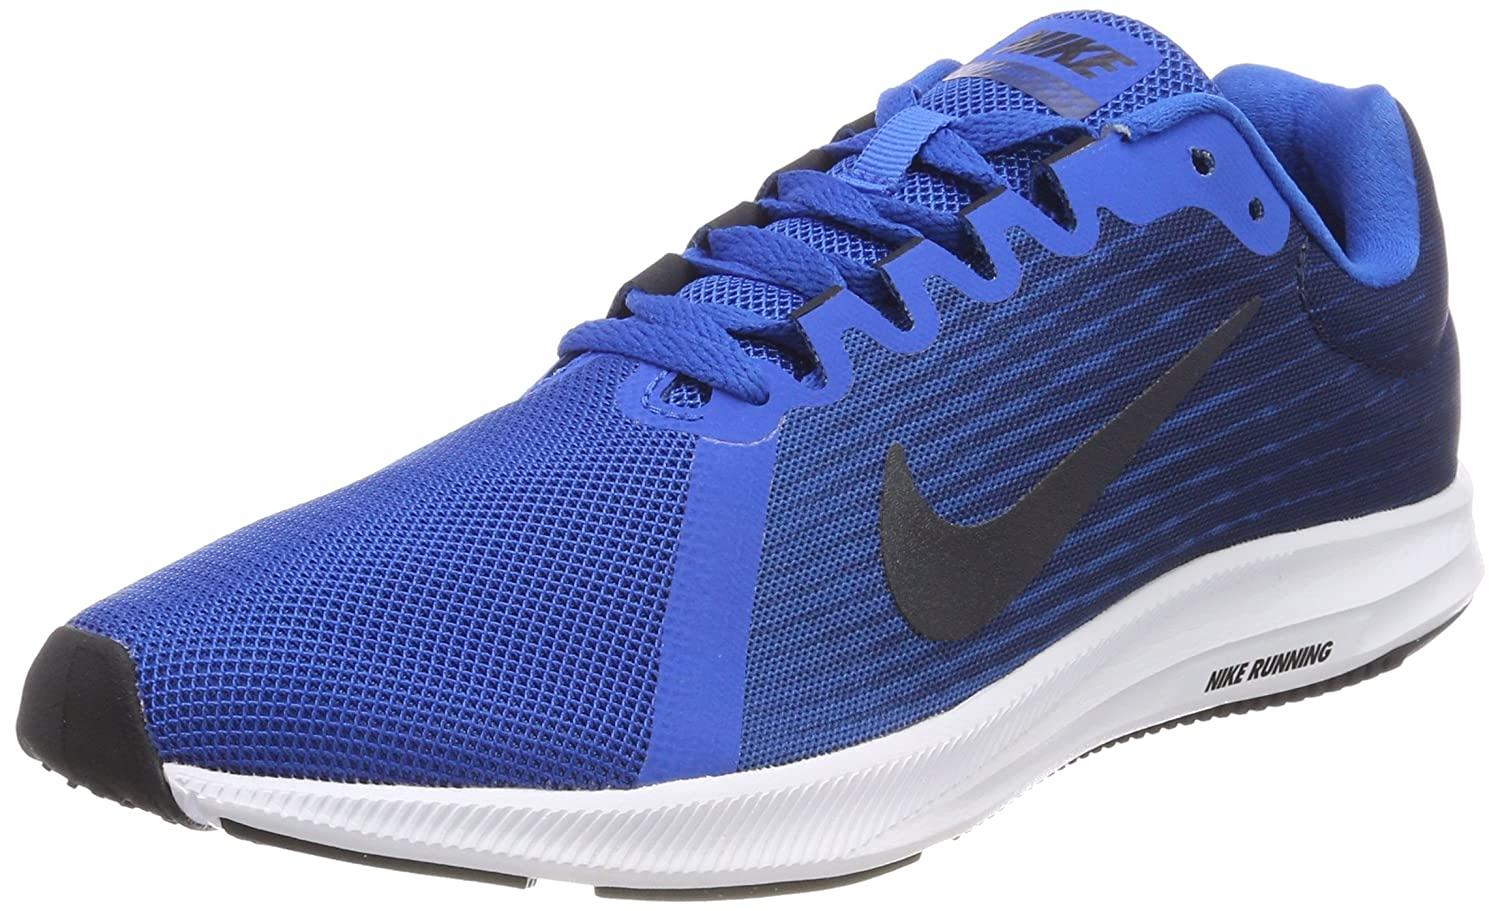 Nike Downshifter 8, Zapatillas de Running Para Hombre 39 EU|Azul (Blue Nebula/Dark Obsidian-navy-white-black 401)